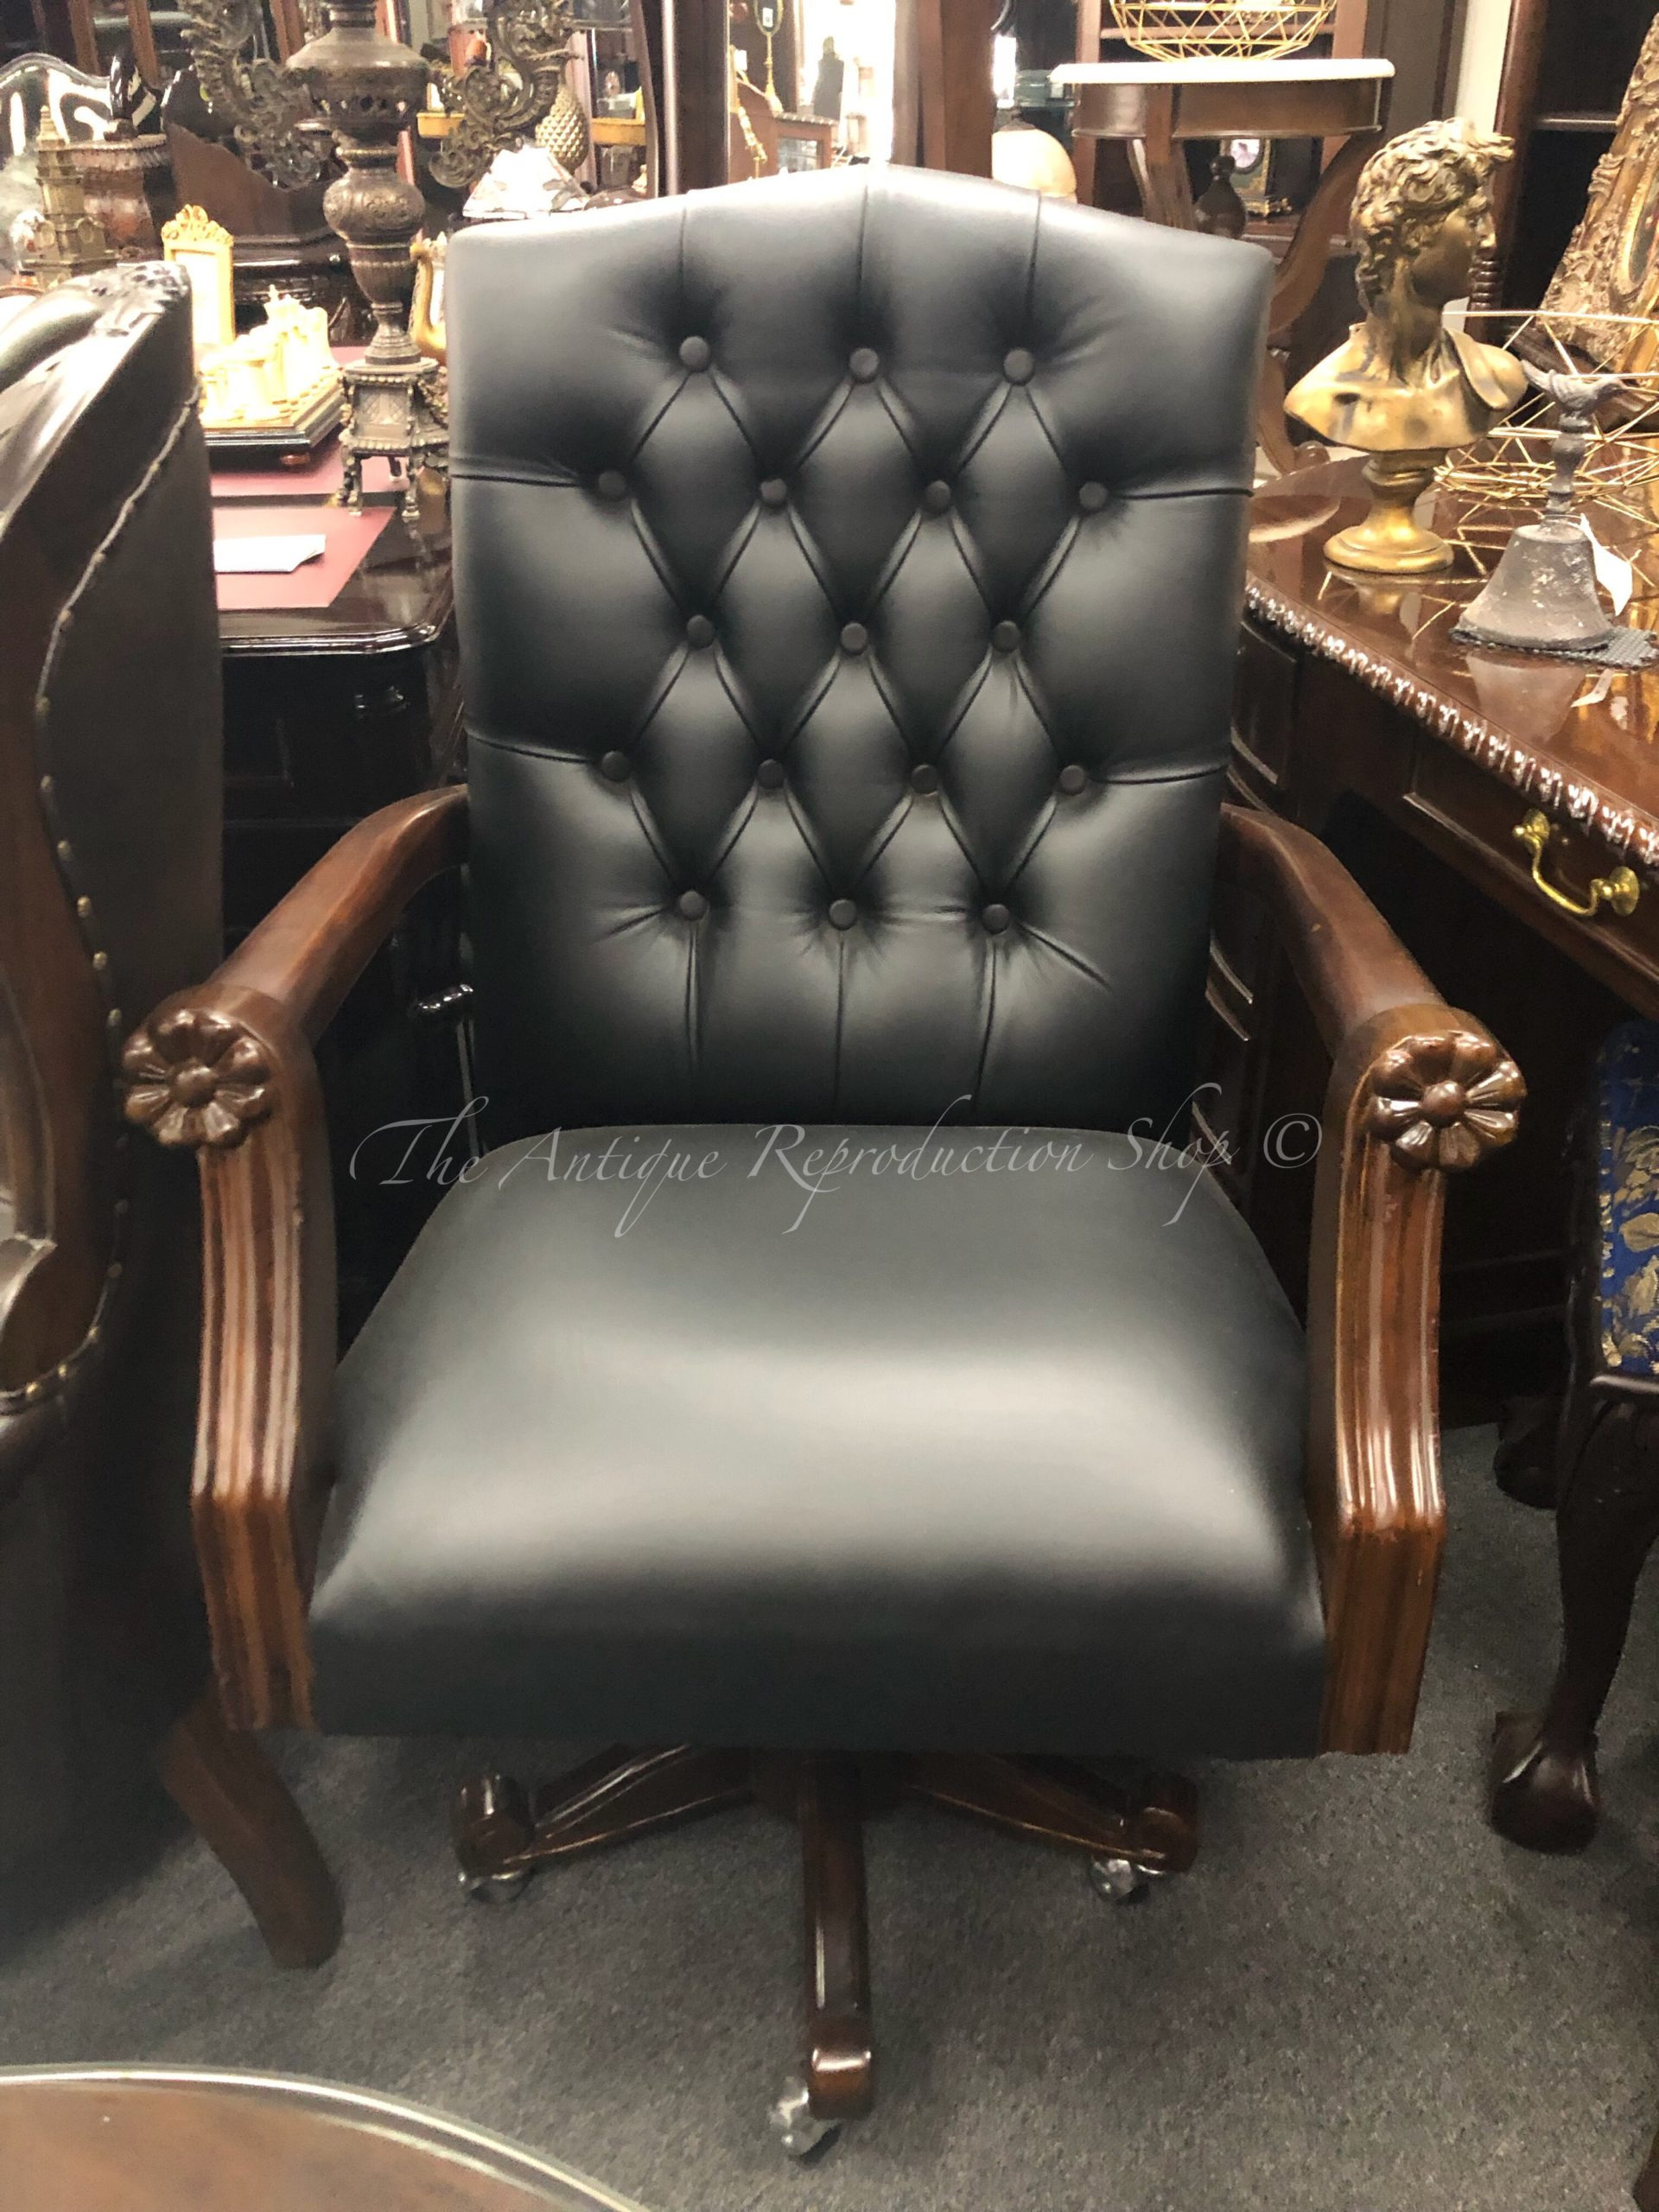 Antique Reproduction Office Furniture Inspirational Wing Style Swivel Fice Chair Traditional In Black Leather